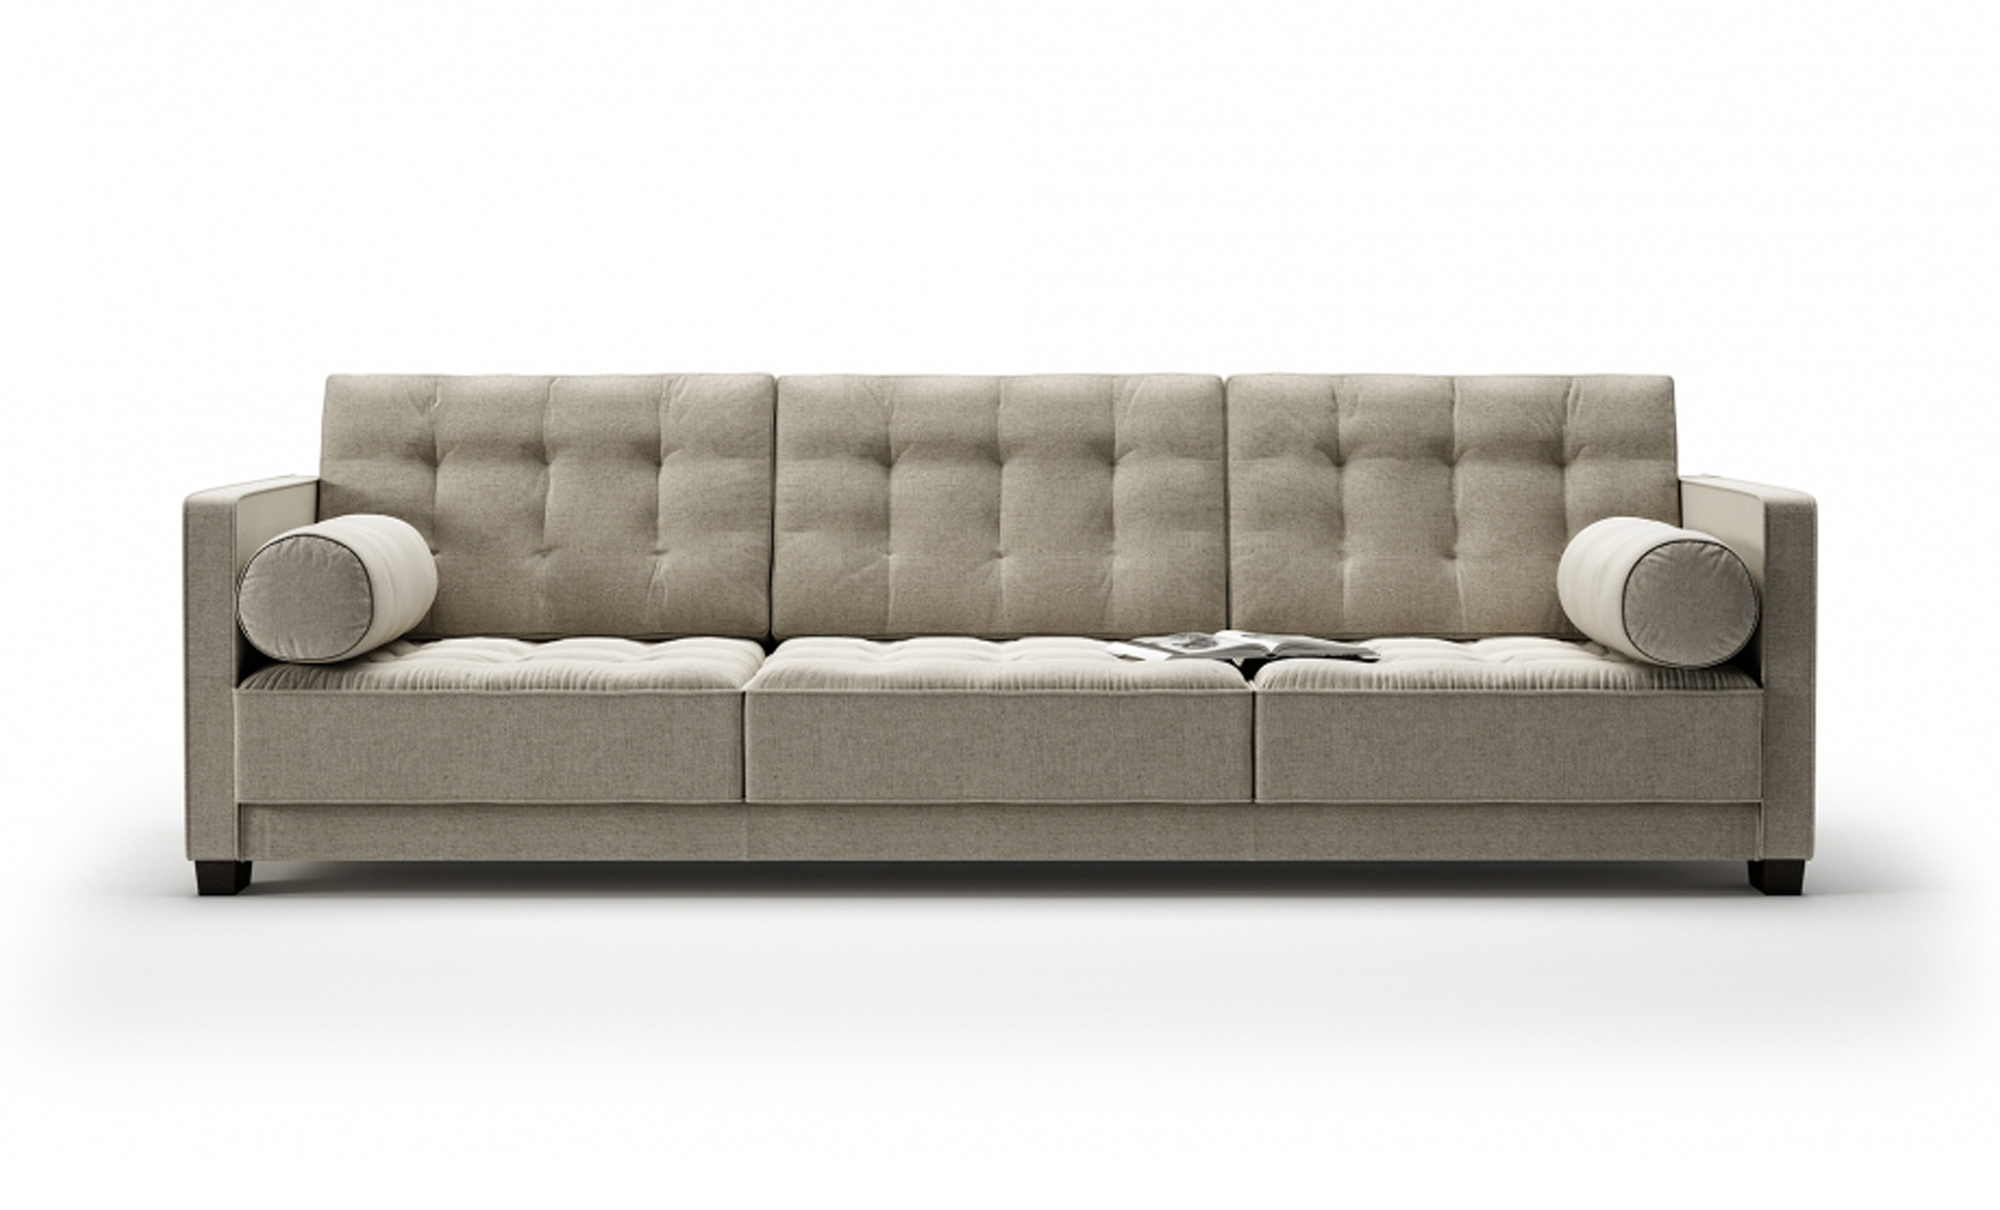 le canape sofa fanuli furniture With le canapé